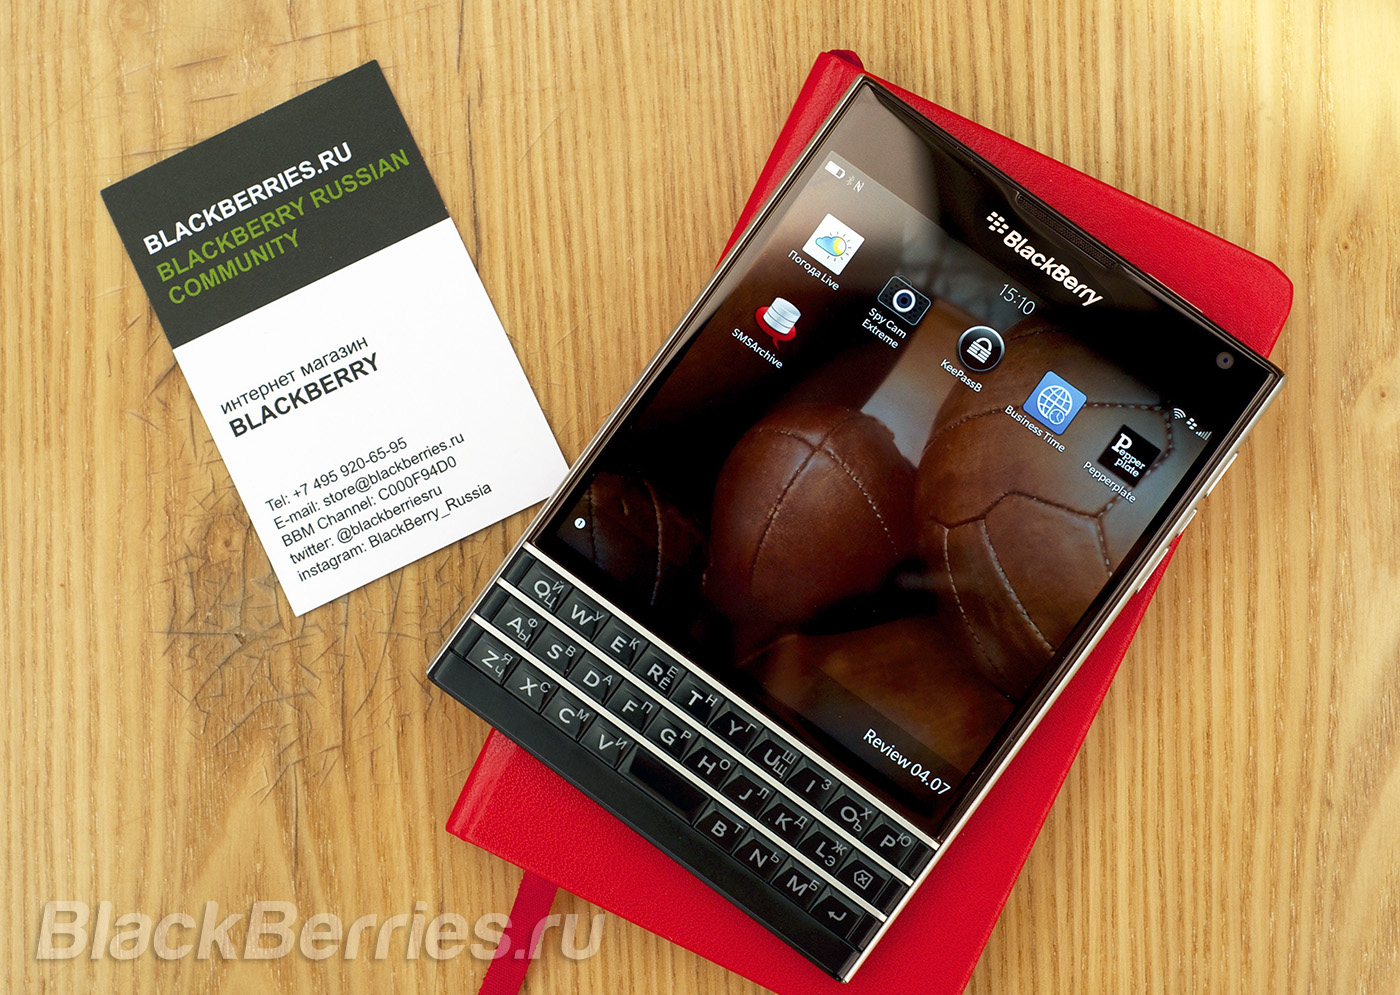 BlackBerry-Passport-Apps-05-07-10